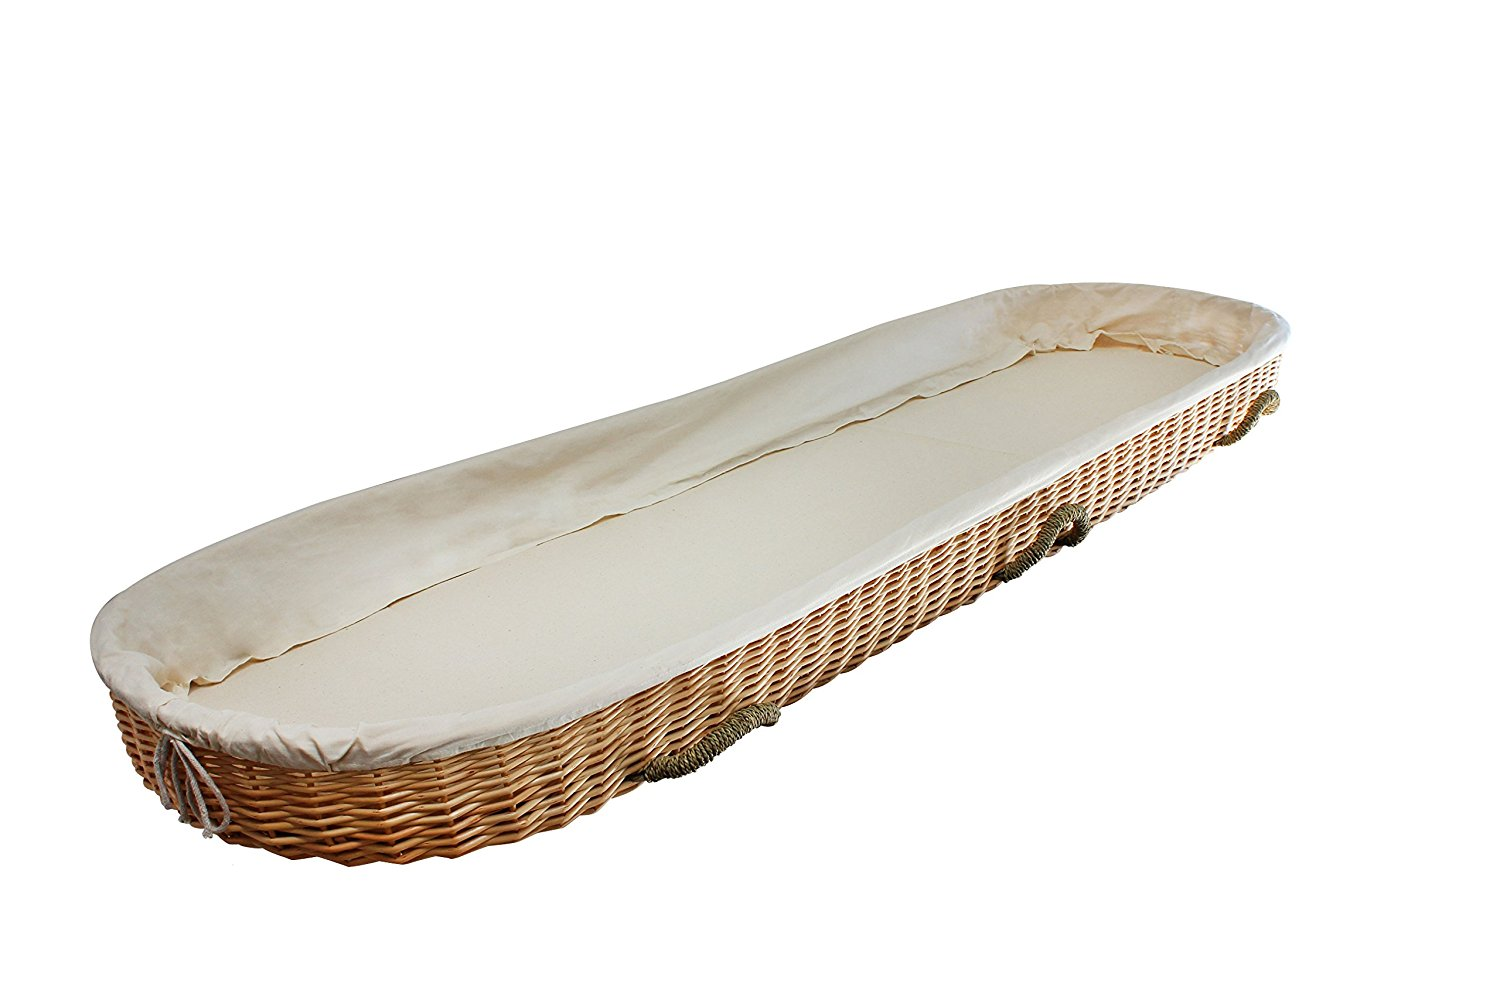 Natural Burial Coffin/Casket Carrier for Shroud burial or cremation made of Willow